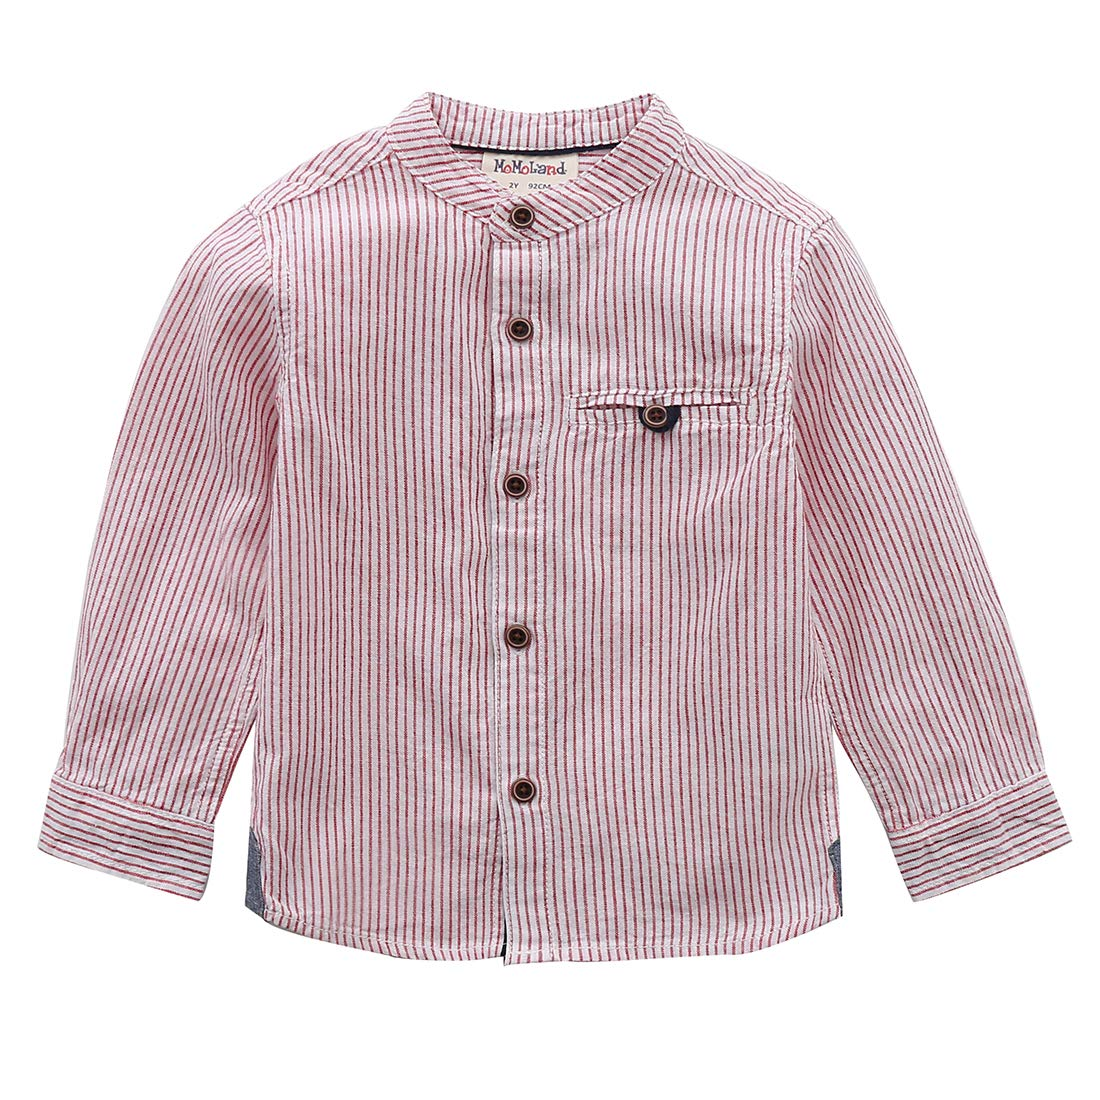 Toms Ware Mens Classic Slim Fit Banded Collar Button Down